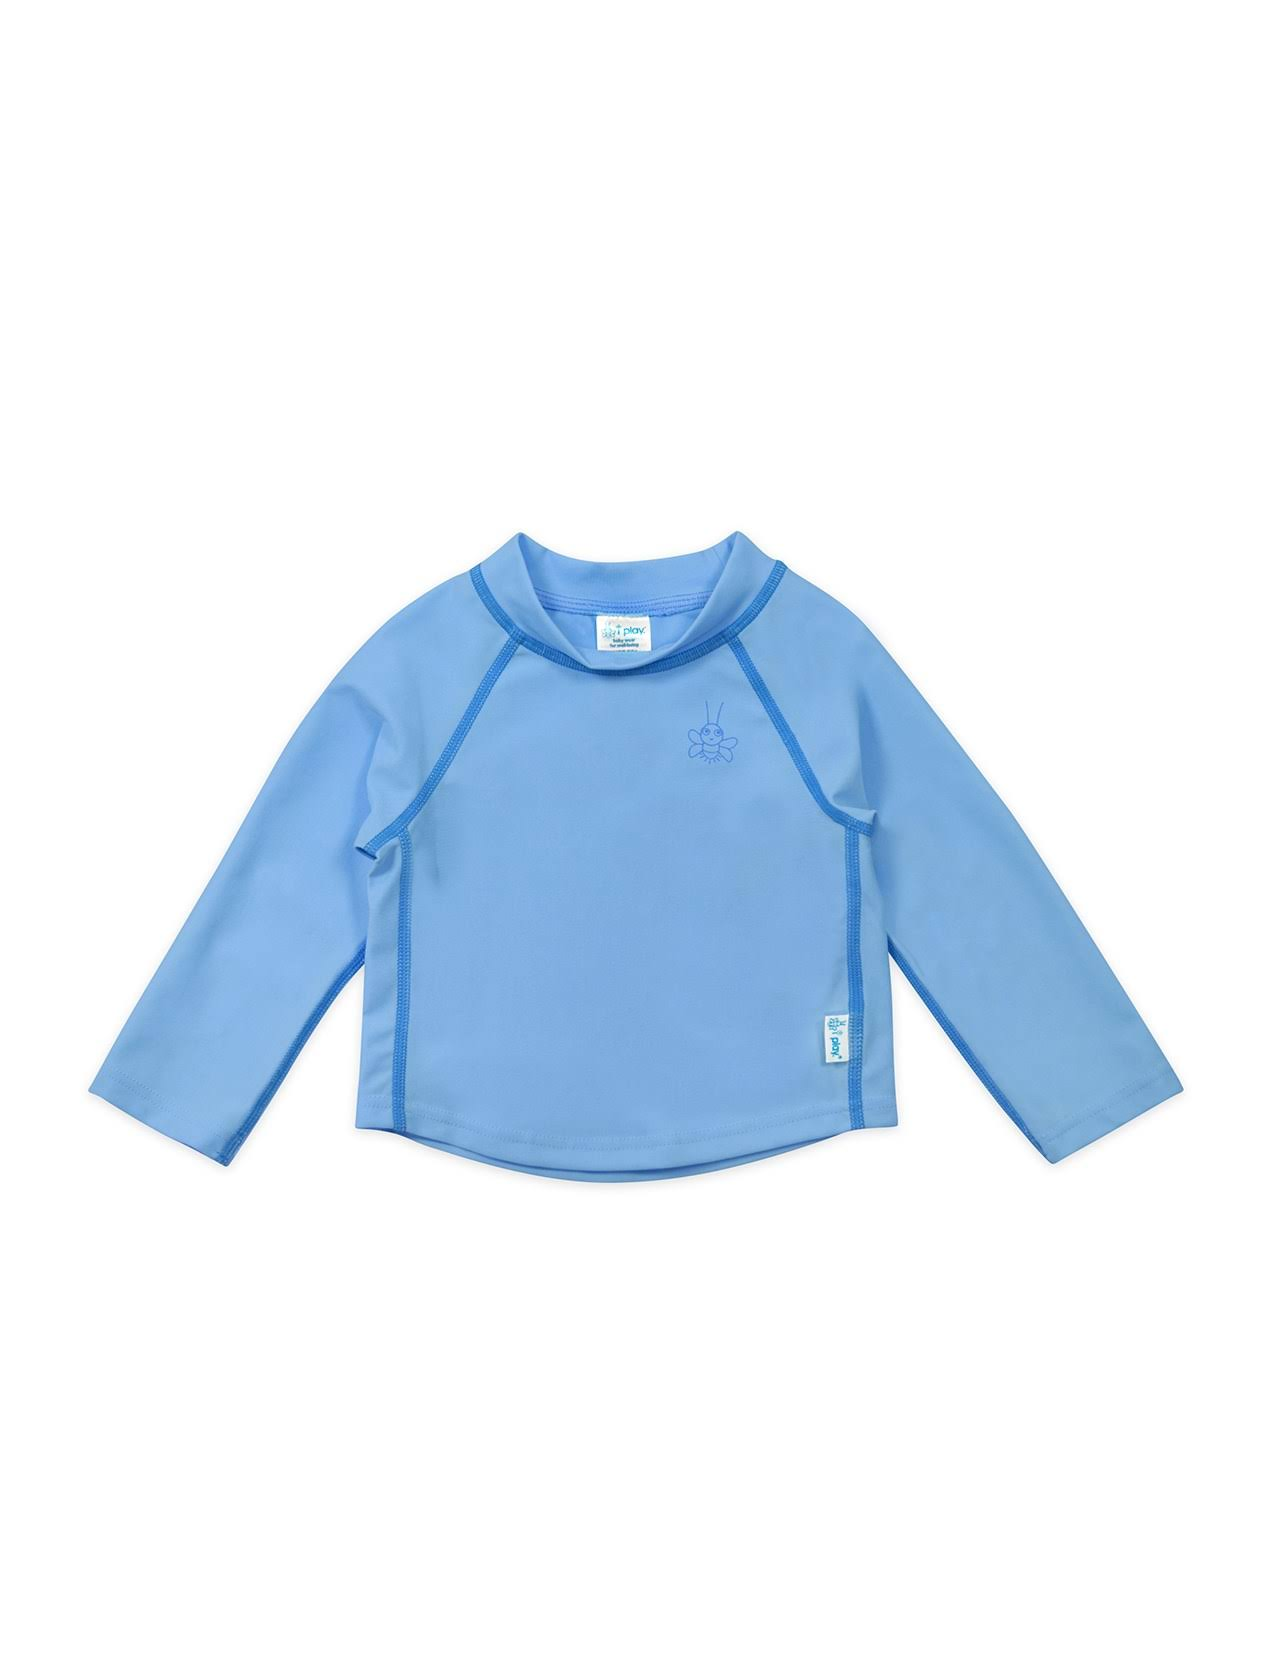 I Play - Long Sleeve Rashguard - 6M - Light Blue